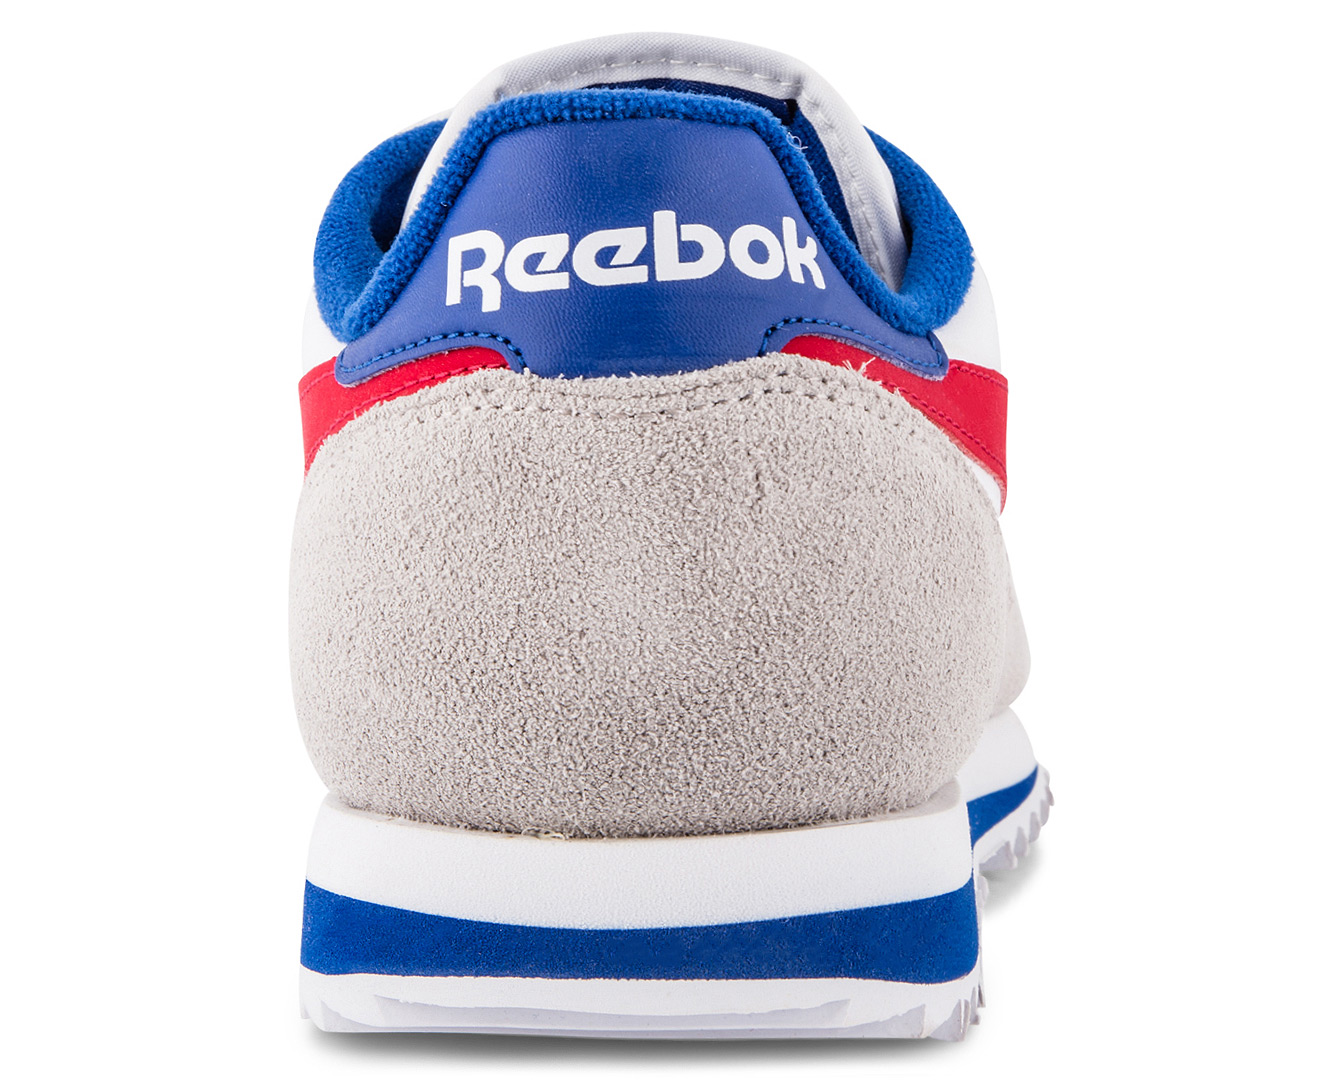 competitive price 04182 a2262 Reebok Mens Classic Leather Ripple Low BP Sneaker - WhiteBlueRedGrey .